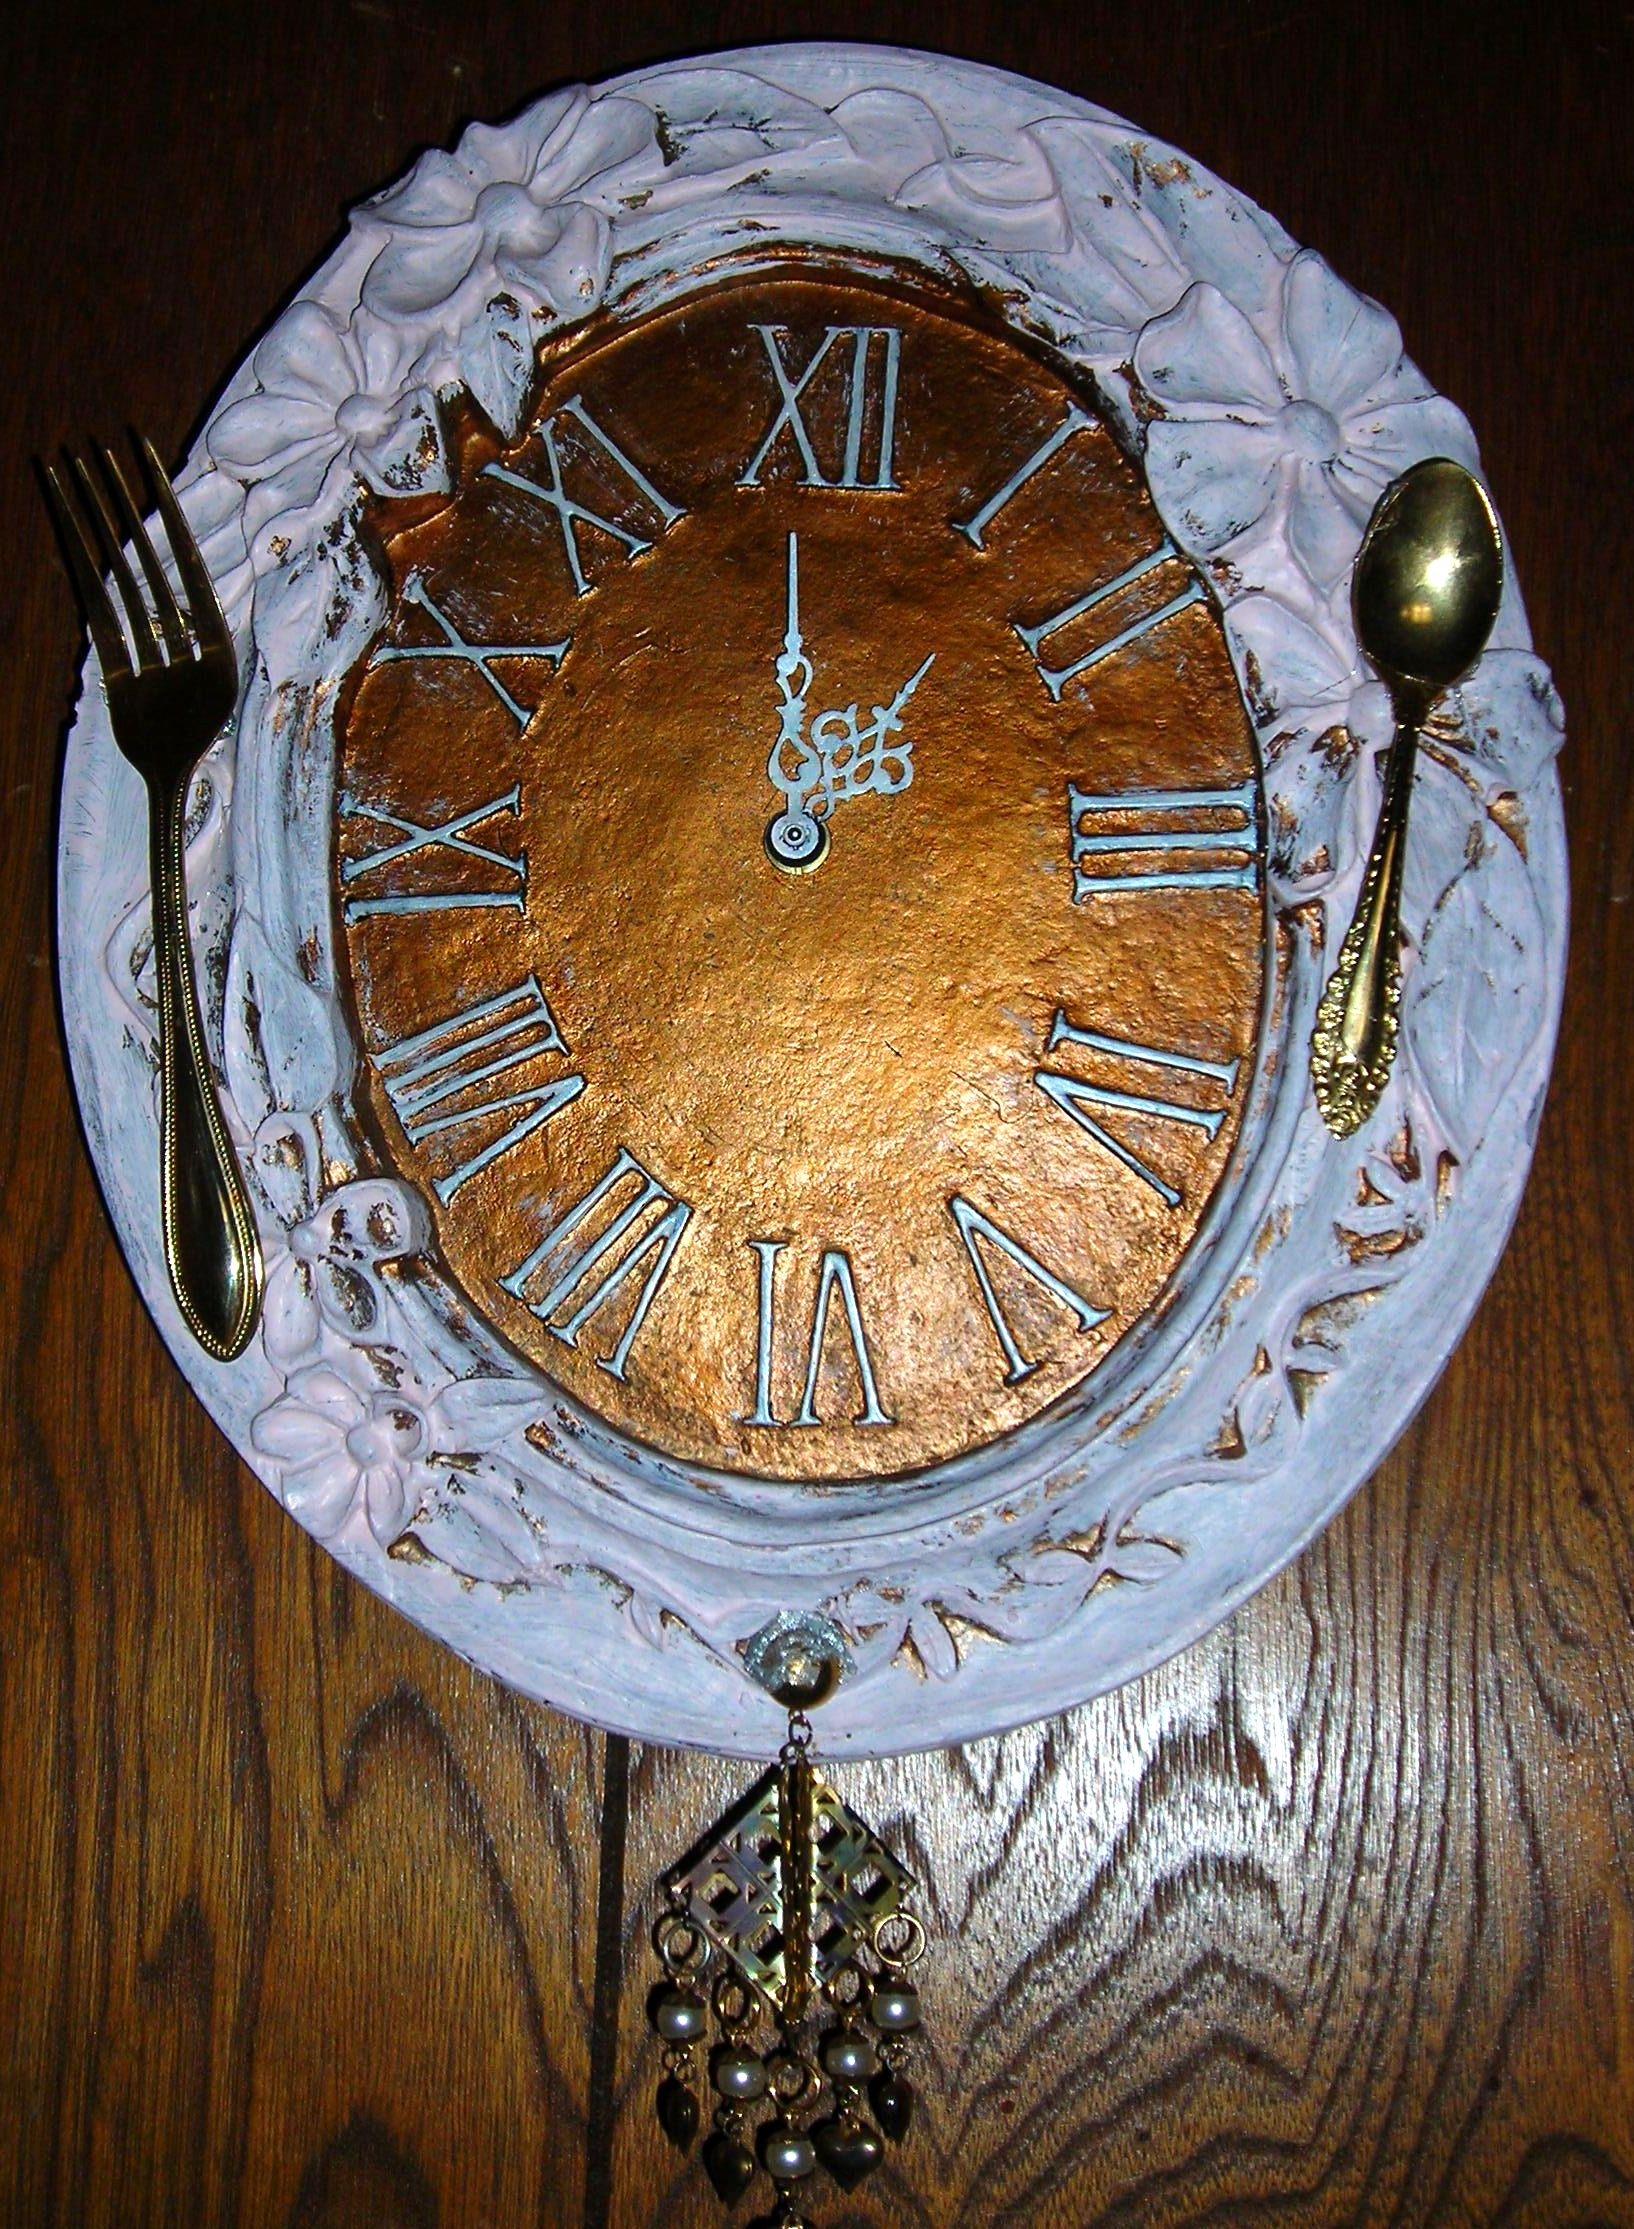 heavy old clock i found at the GW barn a long time ago. it worked, but didn't like that it was all goldtone. FINALLY painted the floral part, numbers and hands pink, glued an old fork and spoon on it (it's in the kitchen) and a castoff earring at the bottom.